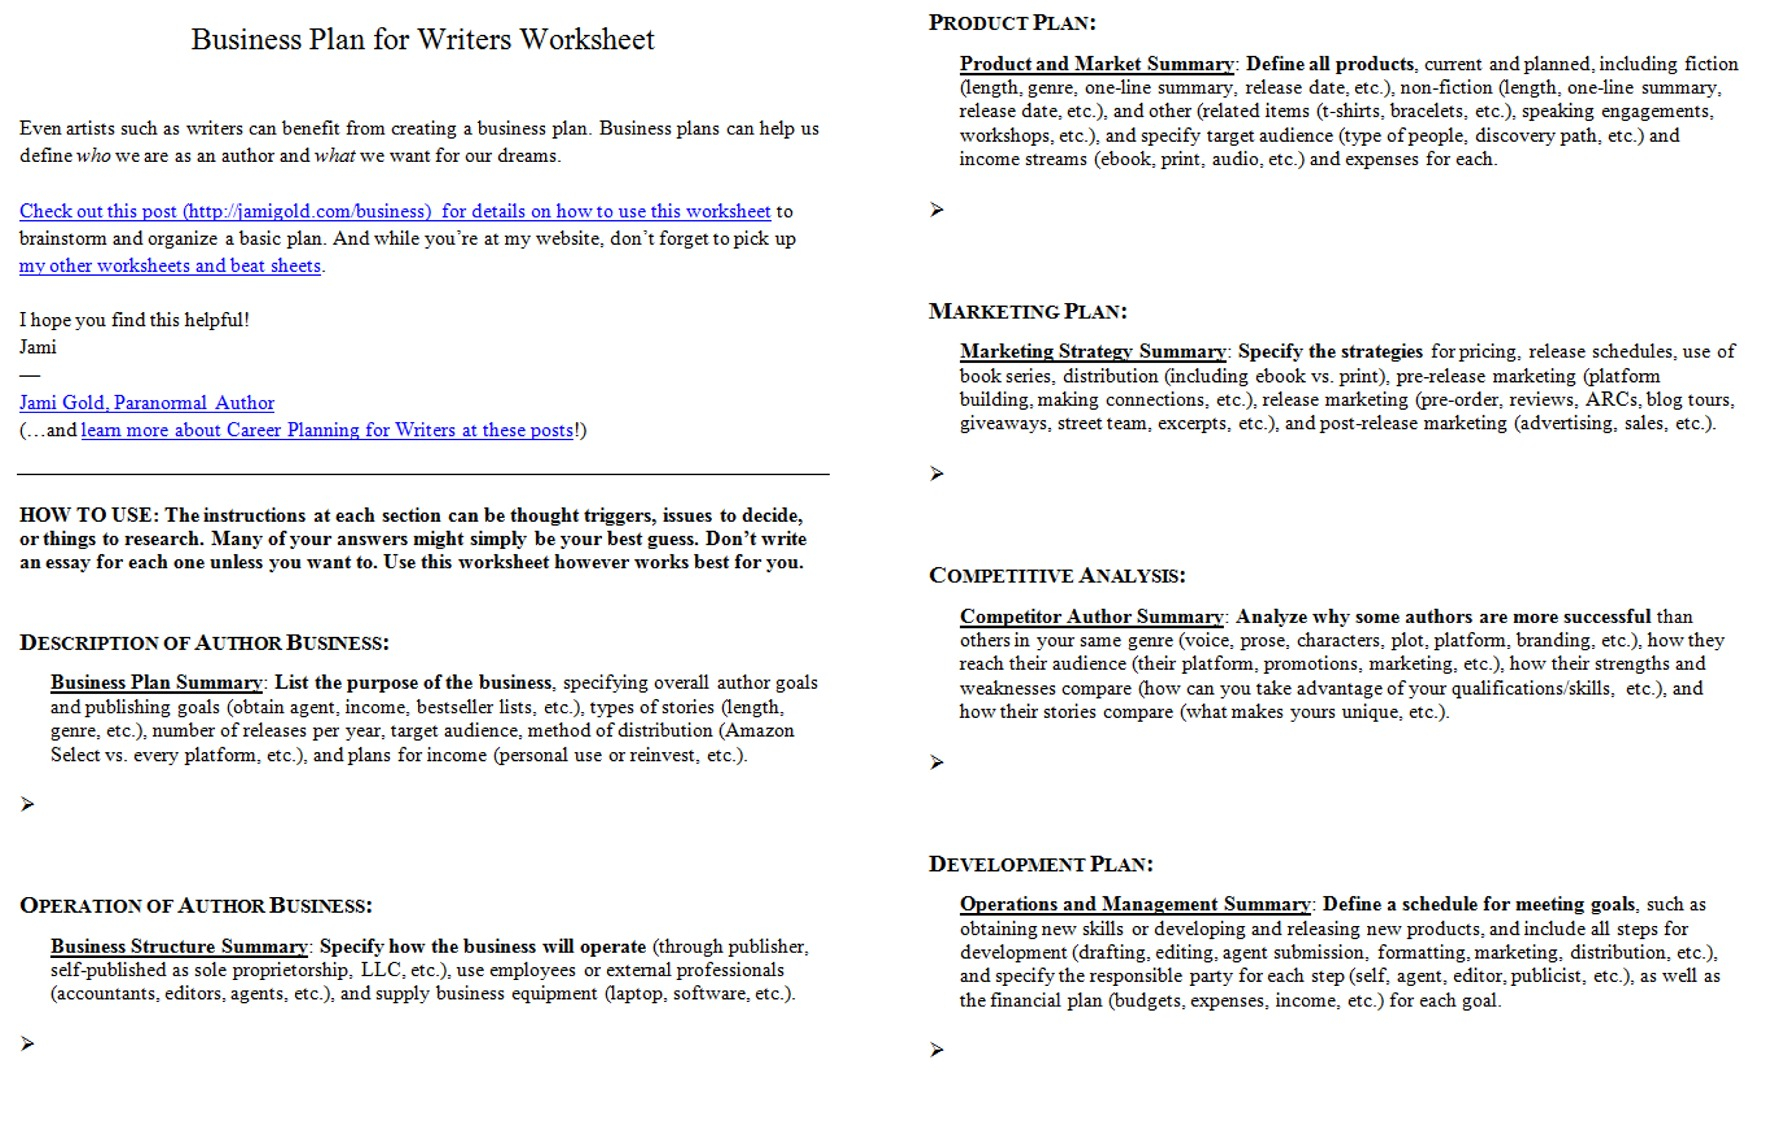 Aldiablosus  Unique Worksheets For Writers  Jami Gold Paranormal Author With Inspiring Screen Shot Of Both Pages Of The Business Plan For Writers Worksheet With Nice Preschool Science Worksheets Also Mgic Self Employed Worksheet In Addition Who Killed The Electric Car Worksheet And Fractions Decimals And Percents Worksheets Th Grade As Well As Action Plan Worksheet Additionally Active Transport Worksheet Answers From Jamigoldcom With Aldiablosus  Inspiring Worksheets For Writers  Jami Gold Paranormal Author With Nice Screen Shot Of Both Pages Of The Business Plan For Writers Worksheet And Unique Preschool Science Worksheets Also Mgic Self Employed Worksheet In Addition Who Killed The Electric Car Worksheet From Jamigoldcom